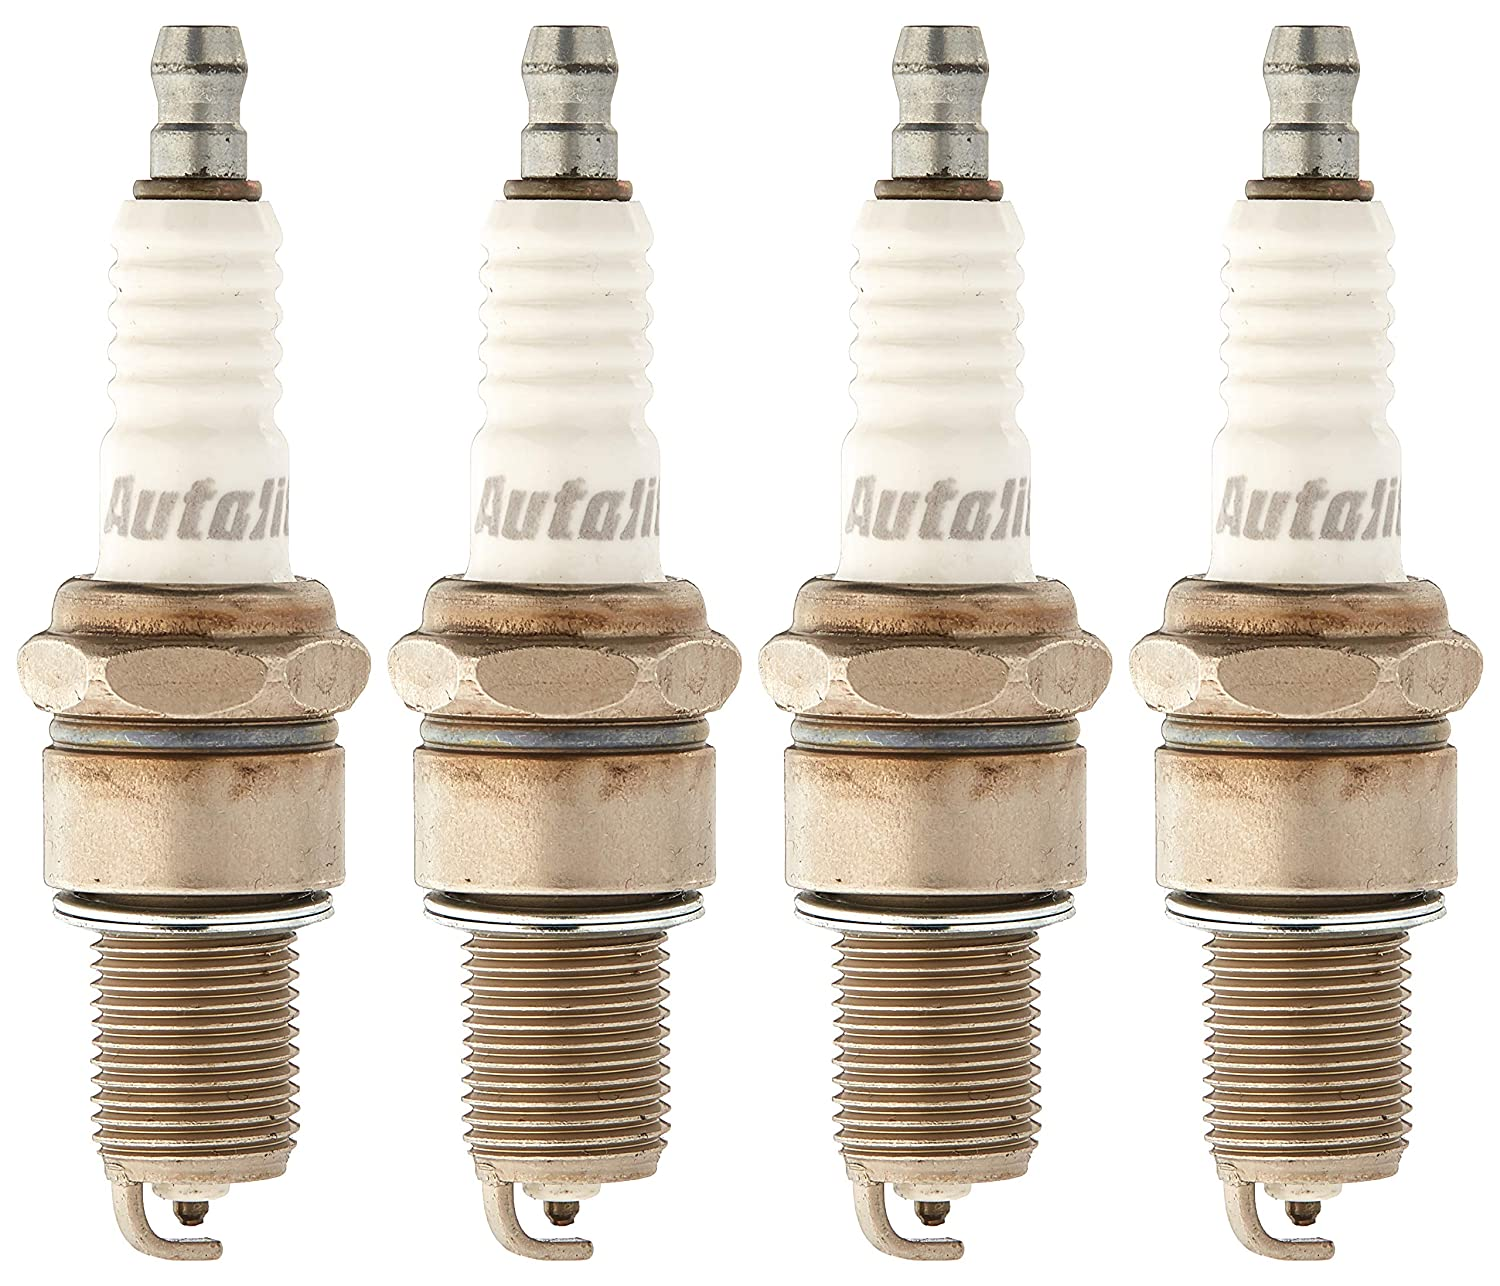 NGK Spark Plug Single Piece Pack for Stock Number 2264 or Copper Core Part No BPR2ES